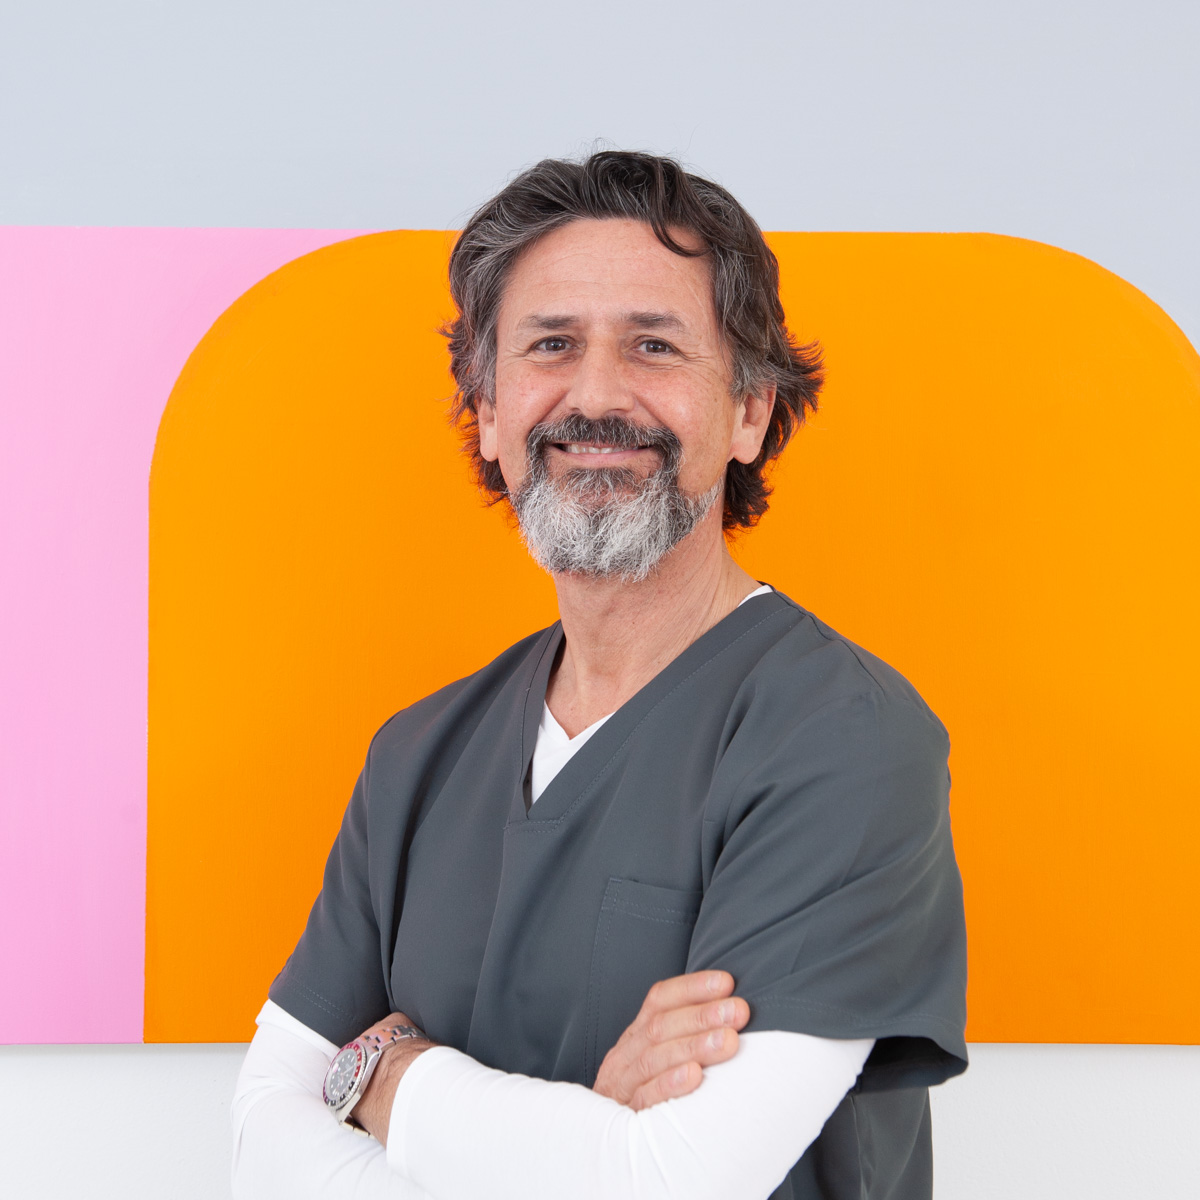 Dr. Paolo Bardine